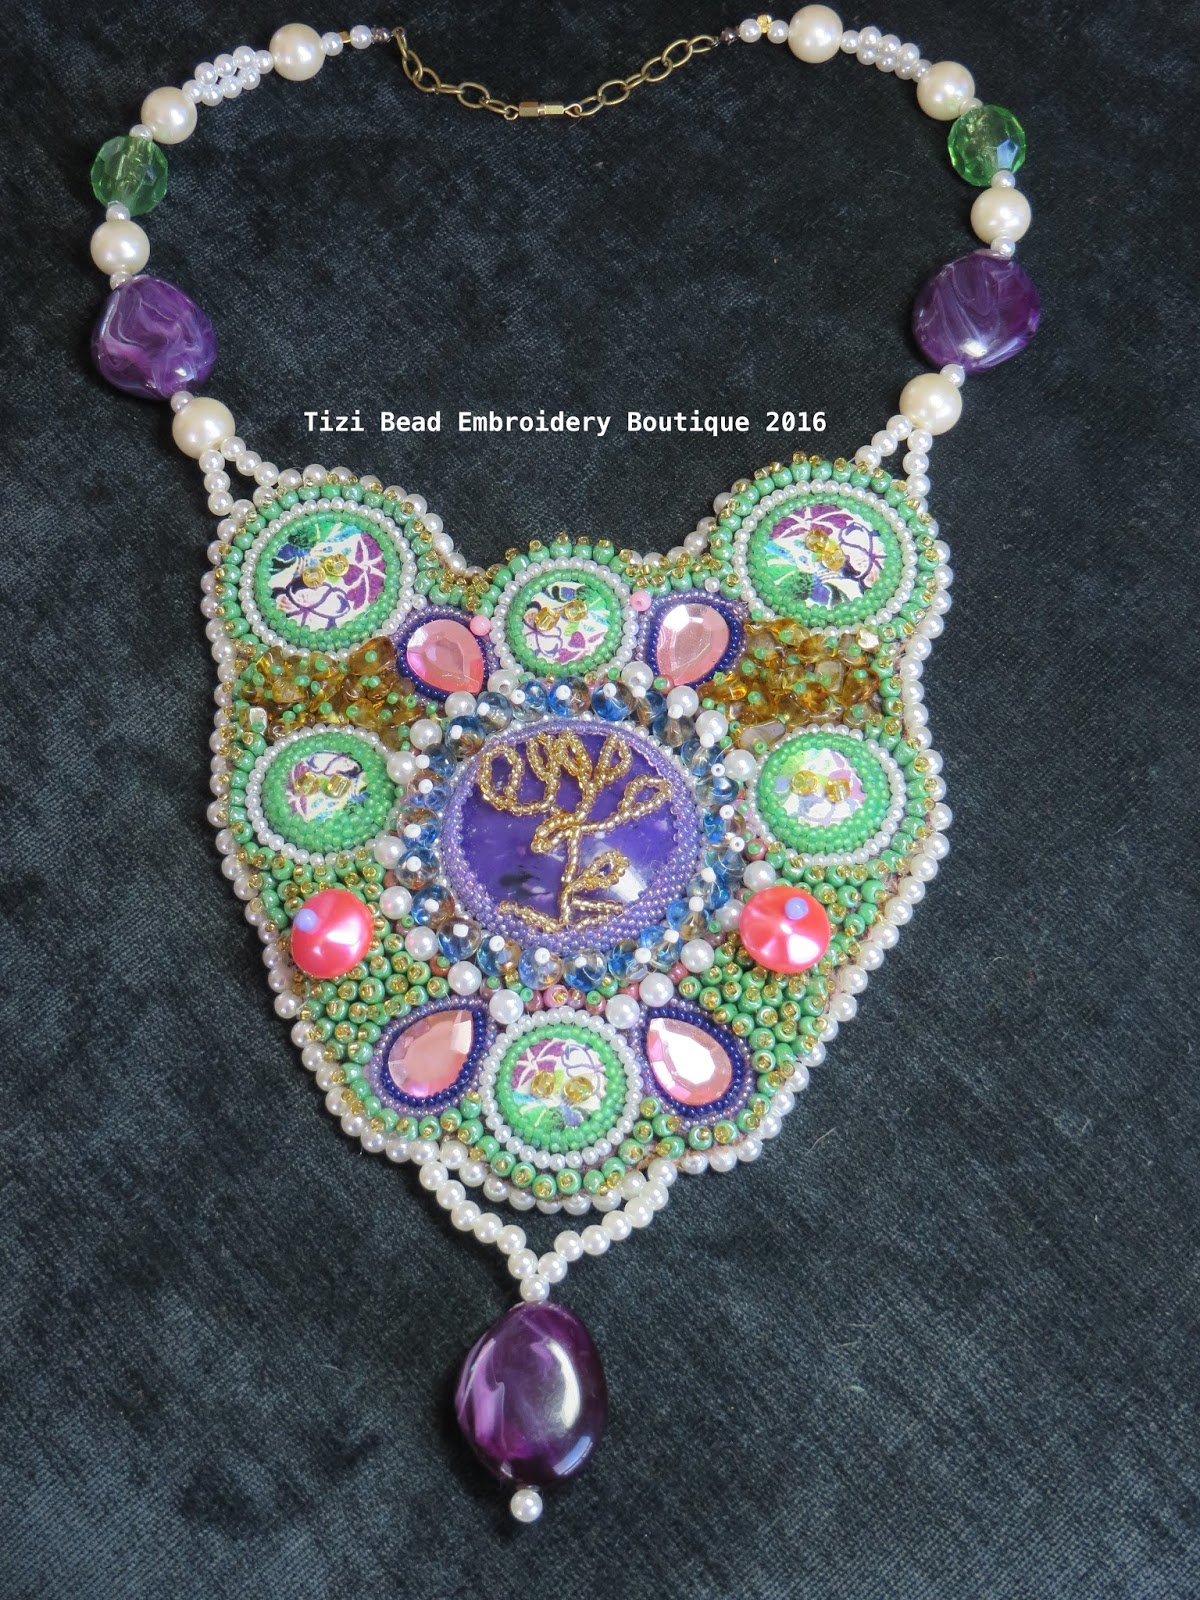 Tizi bead embroidery boutique amethyst tree of life